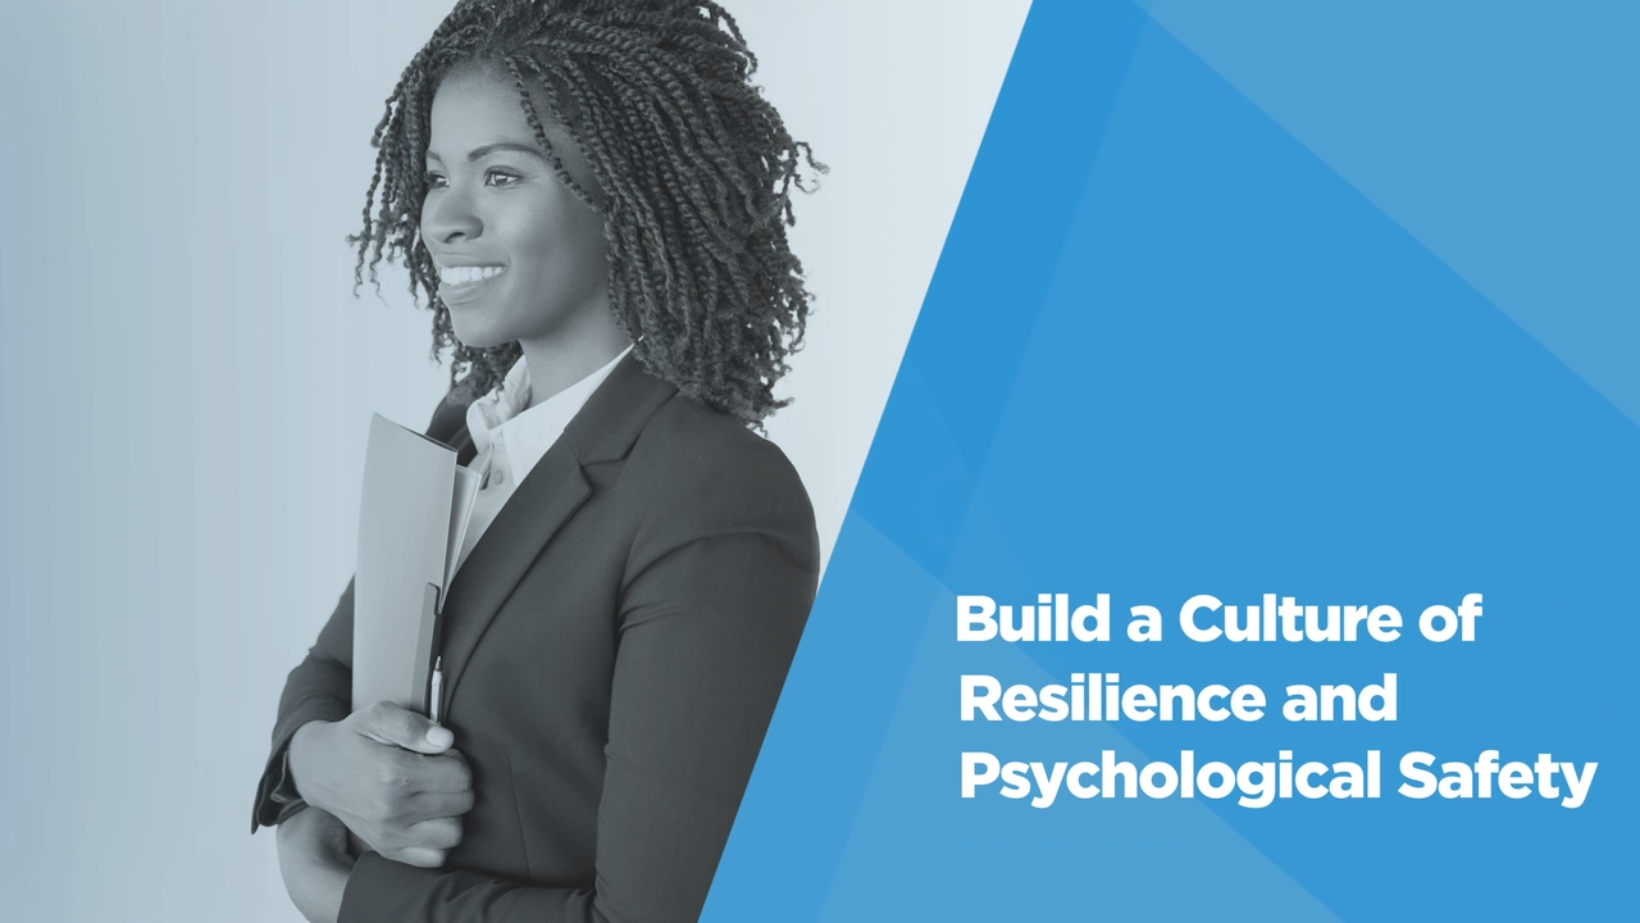 Video: Be a Better Leader: Build a Culture of Resilience and Psychological Safety